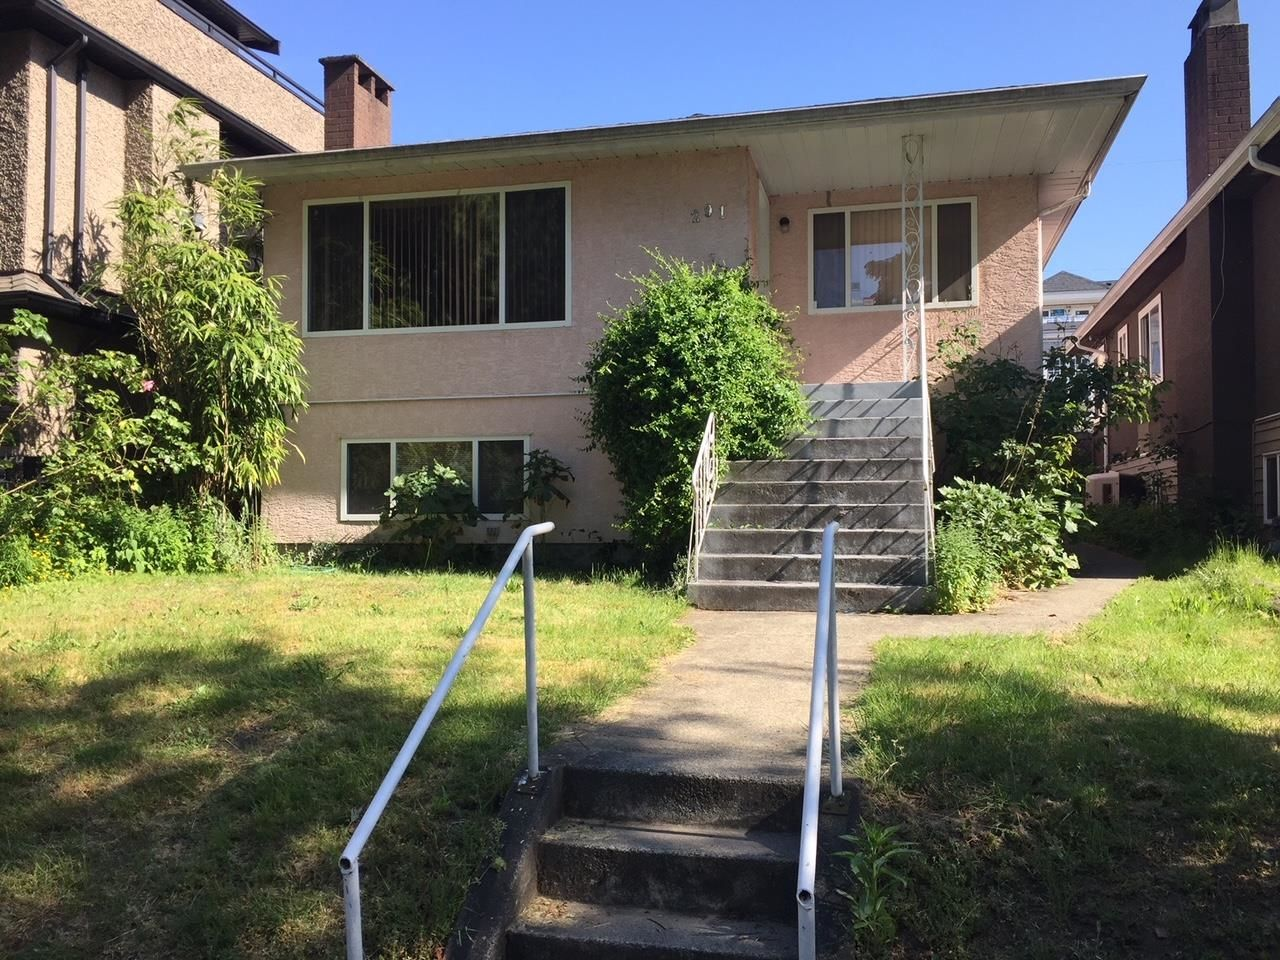 Main Photo: 291 W 63RD Avenue in Vancouver: Marpole House for sale (Vancouver West)  : MLS®# R2622925